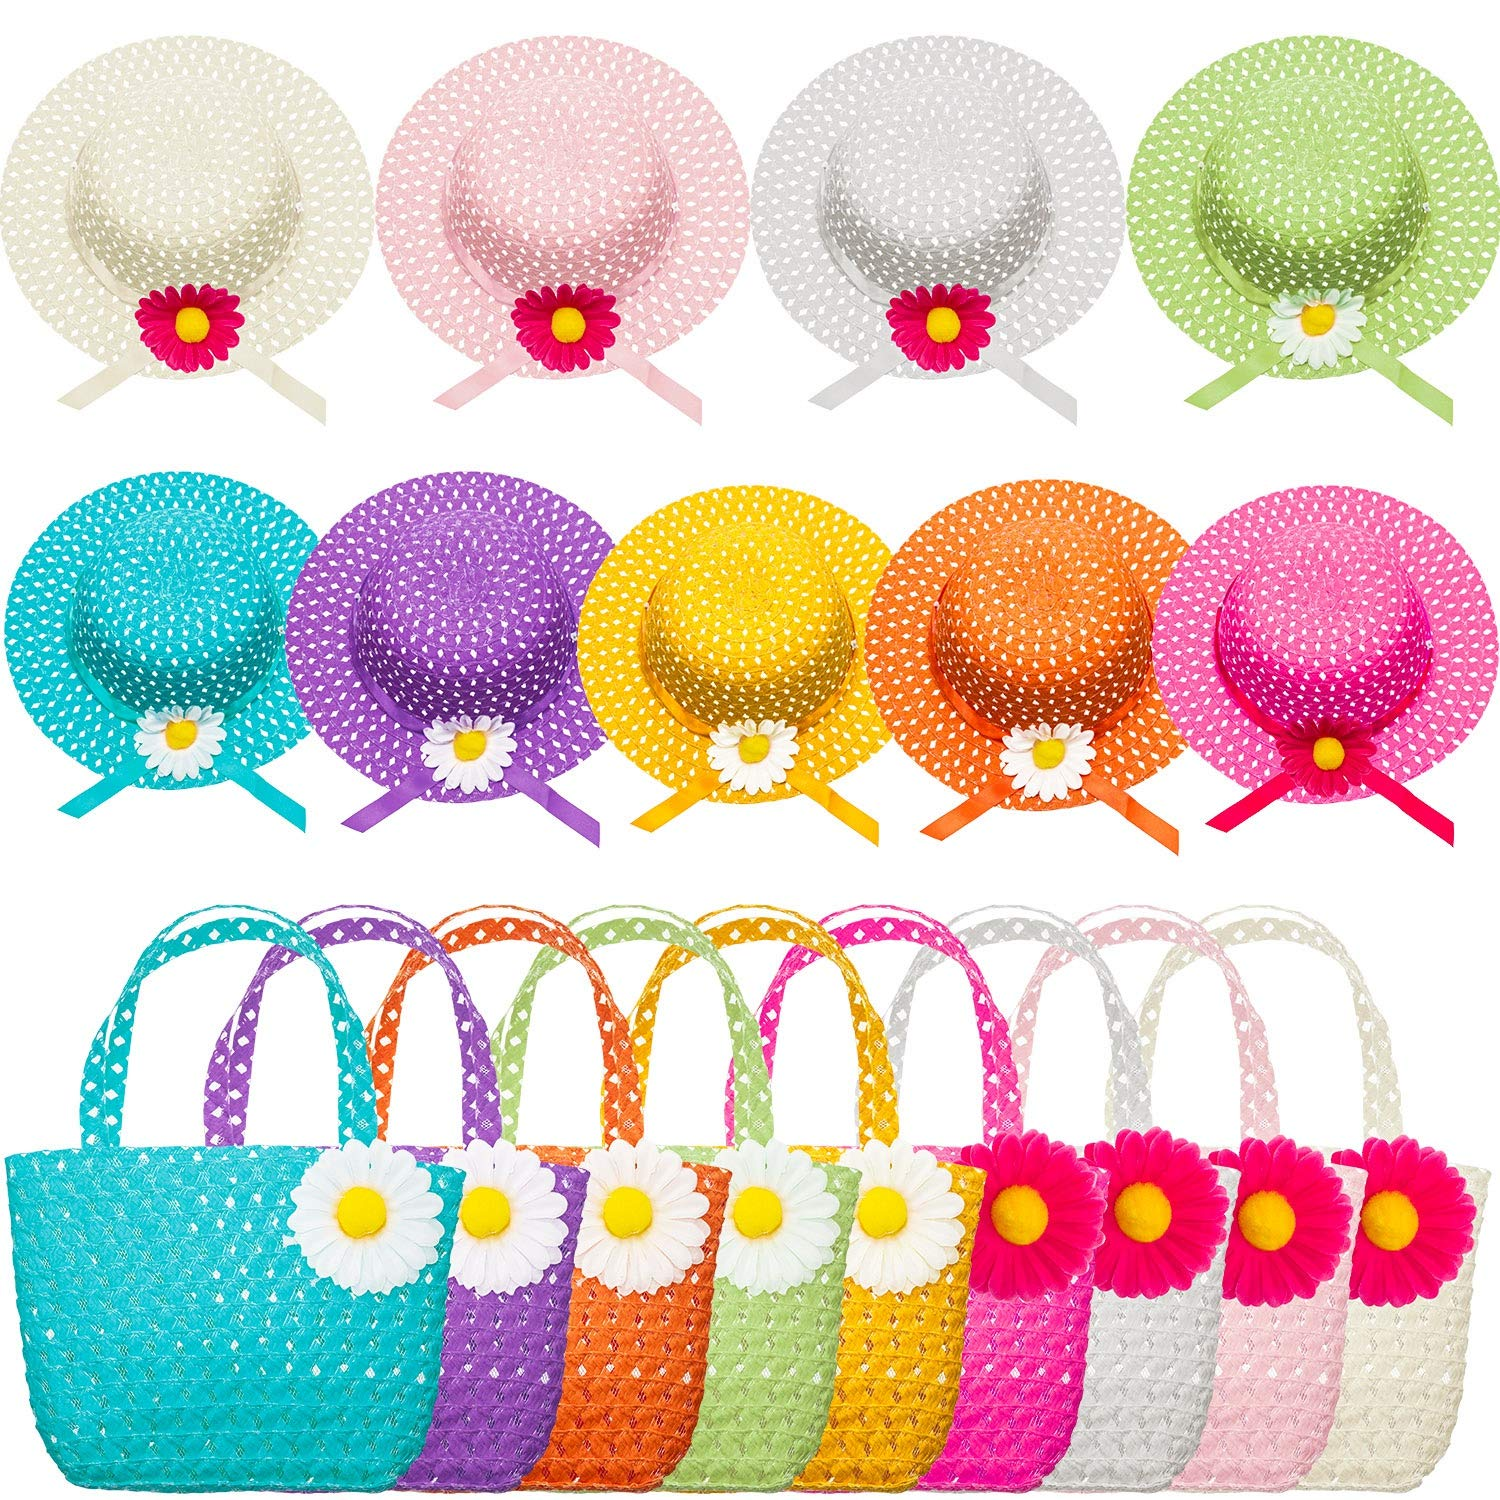 Zhanmai 9 Sets Girls Tea Party Hats Purse Daisy Flower Sun Straw Hat and Purse Sets Includes 9 Purses 9 Daisy Flower Sunhats 9 Colors by Zhanmai